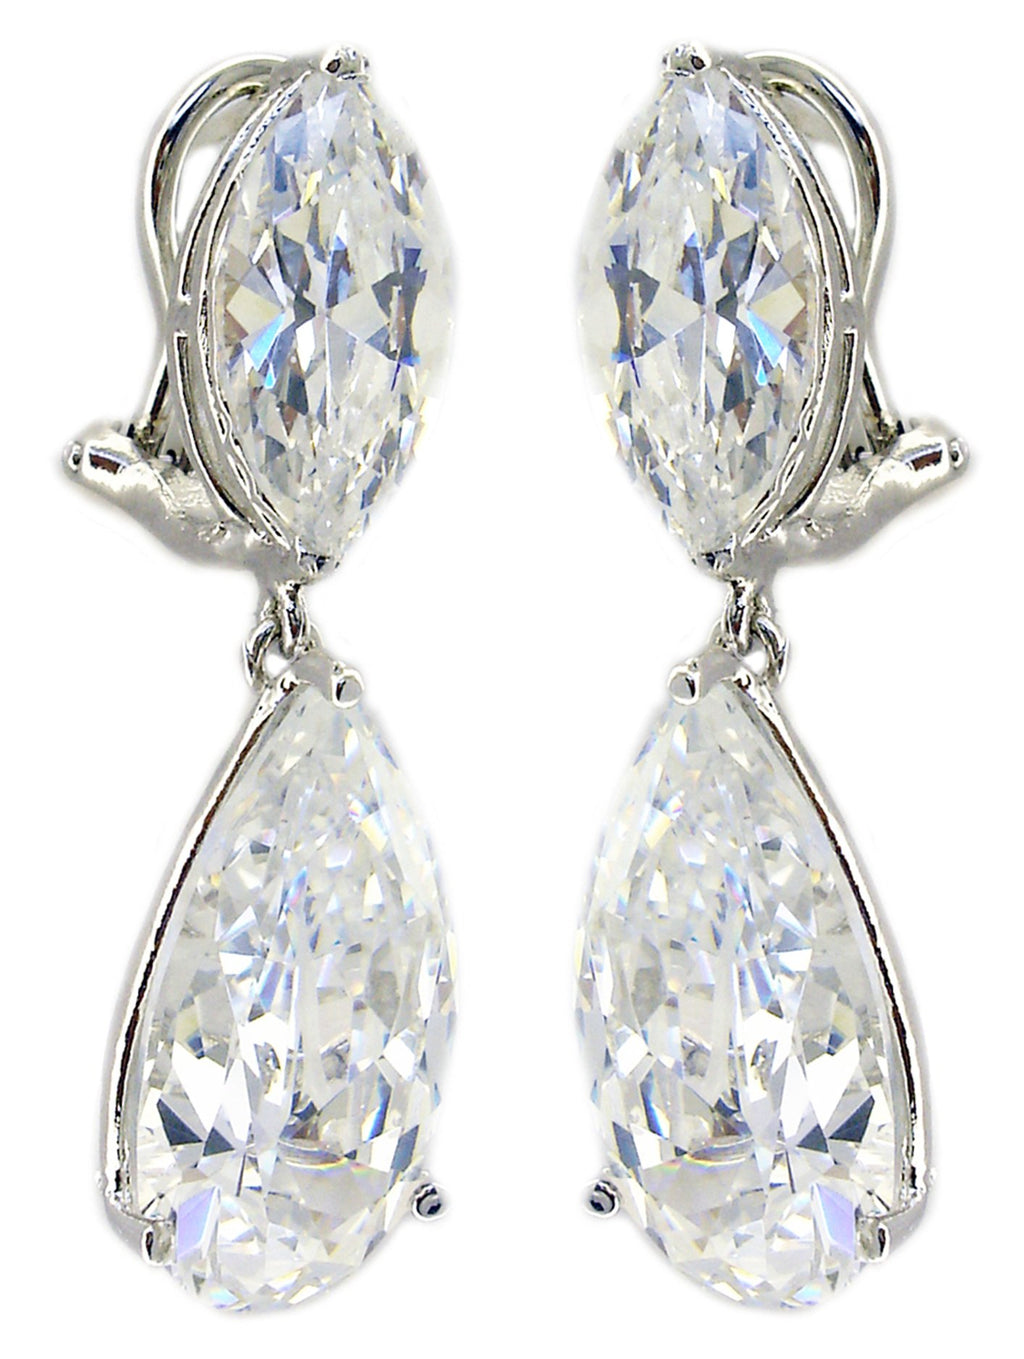 Ophra Mq Top Cz Earring Tear Drop